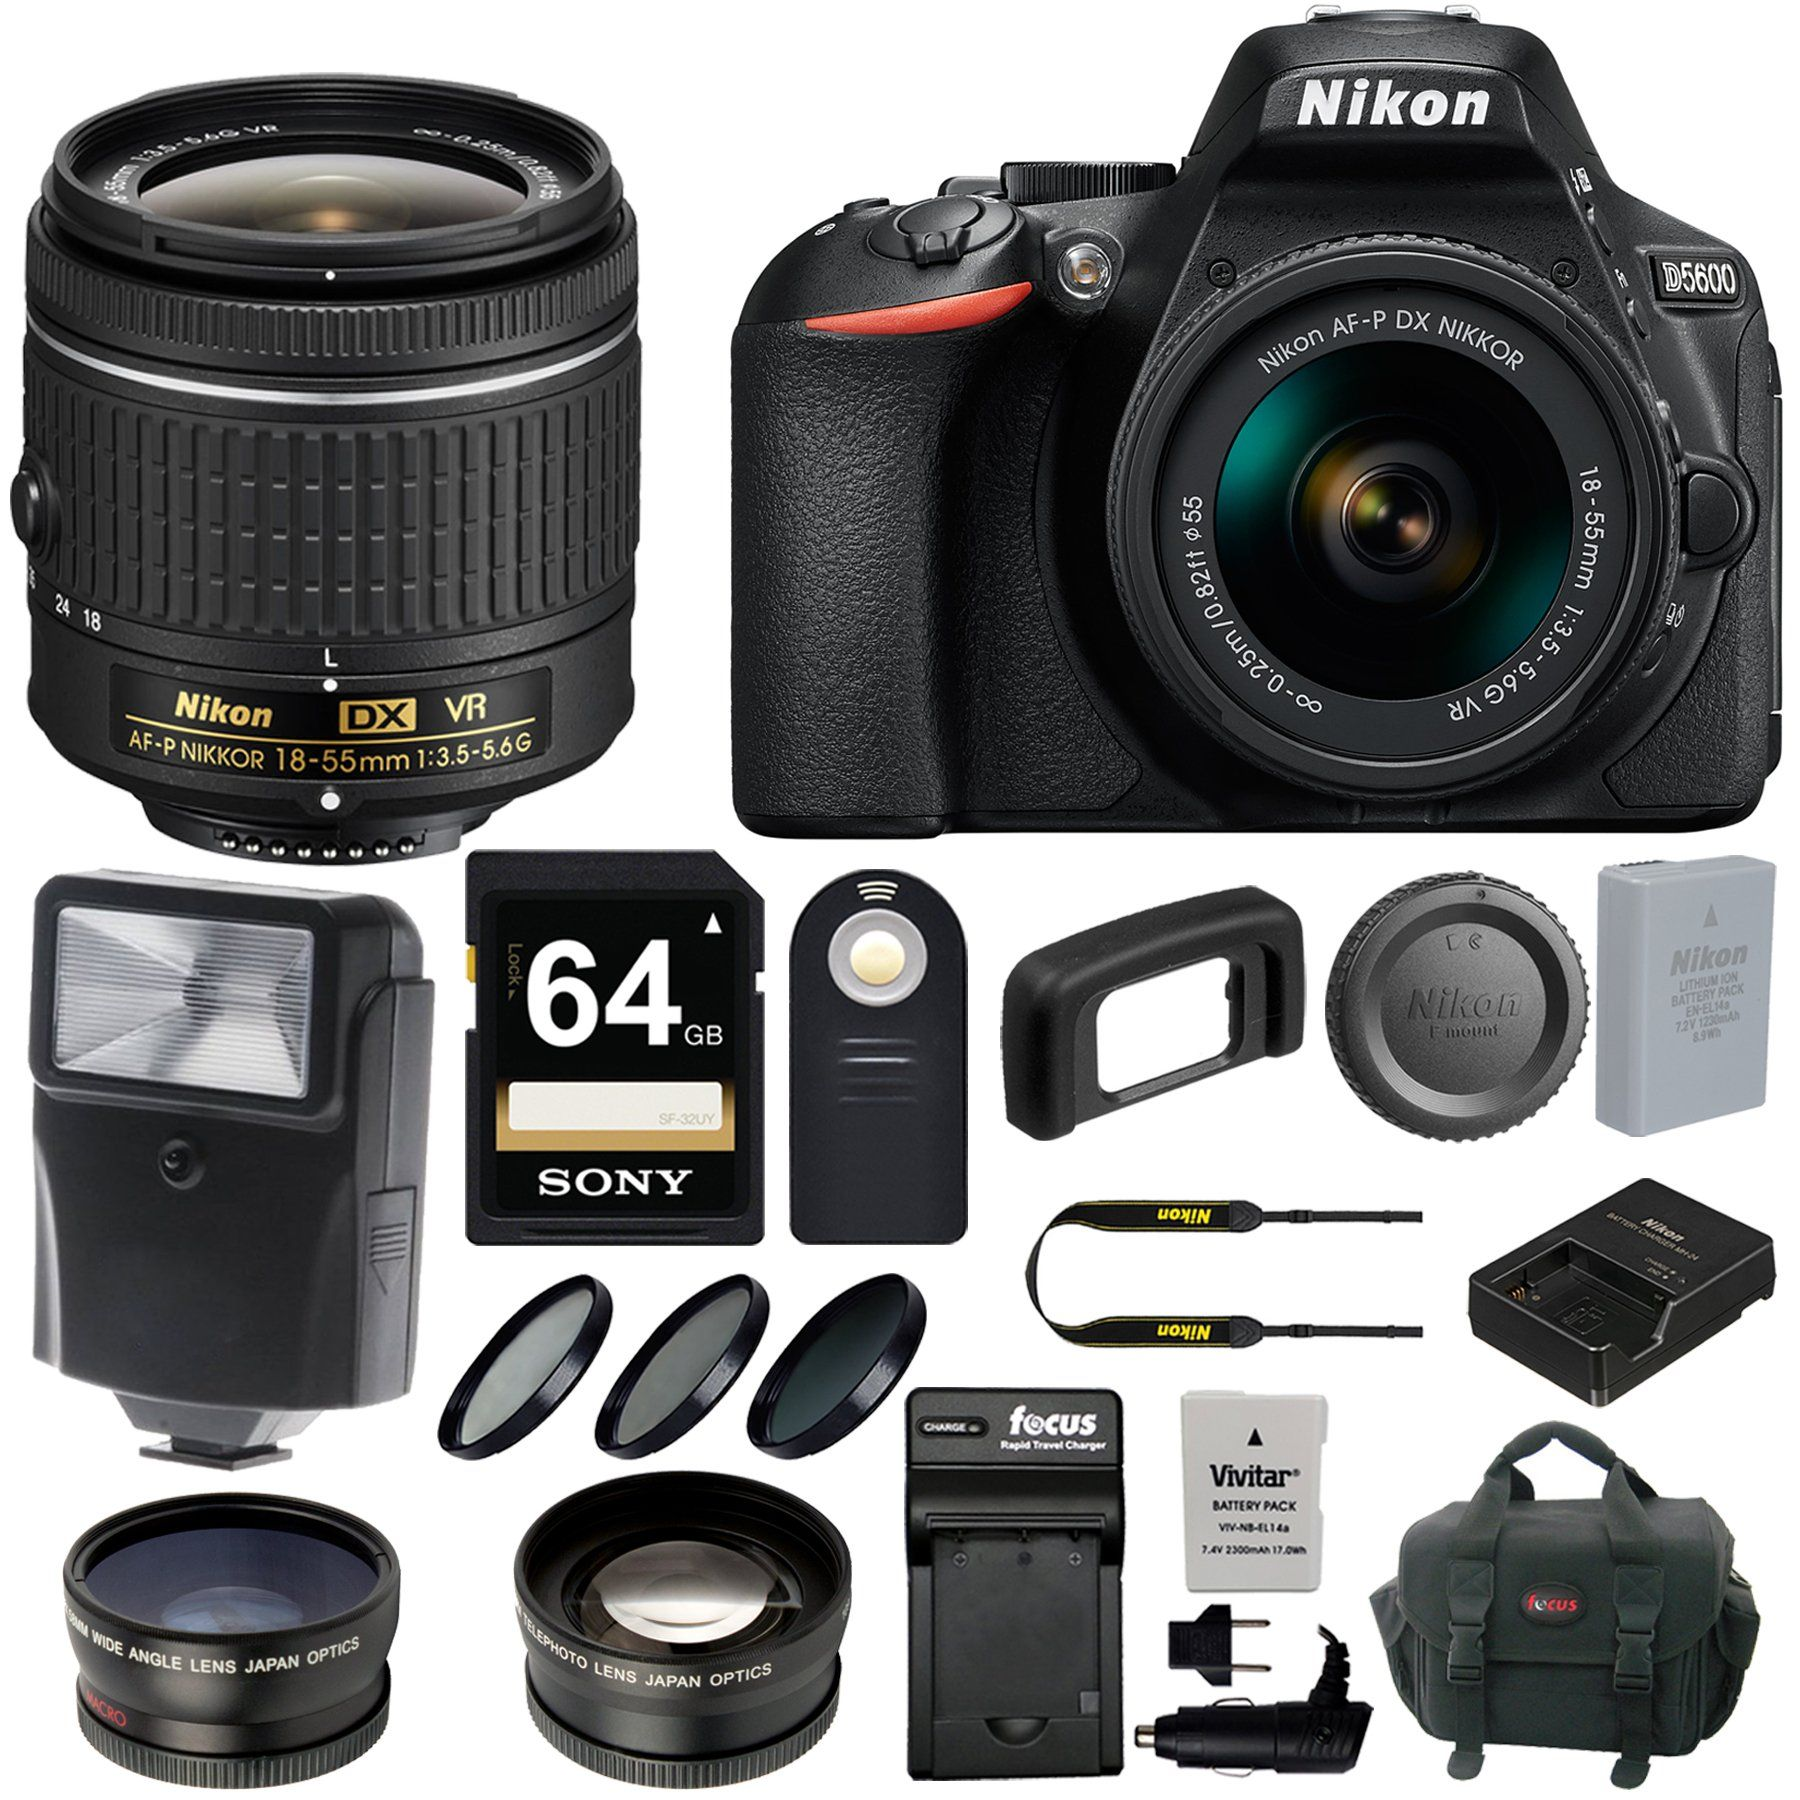 Nikon D5600 DSLR Camera with 18 55mm Lens and 64GB Card Flash Batteries Kit